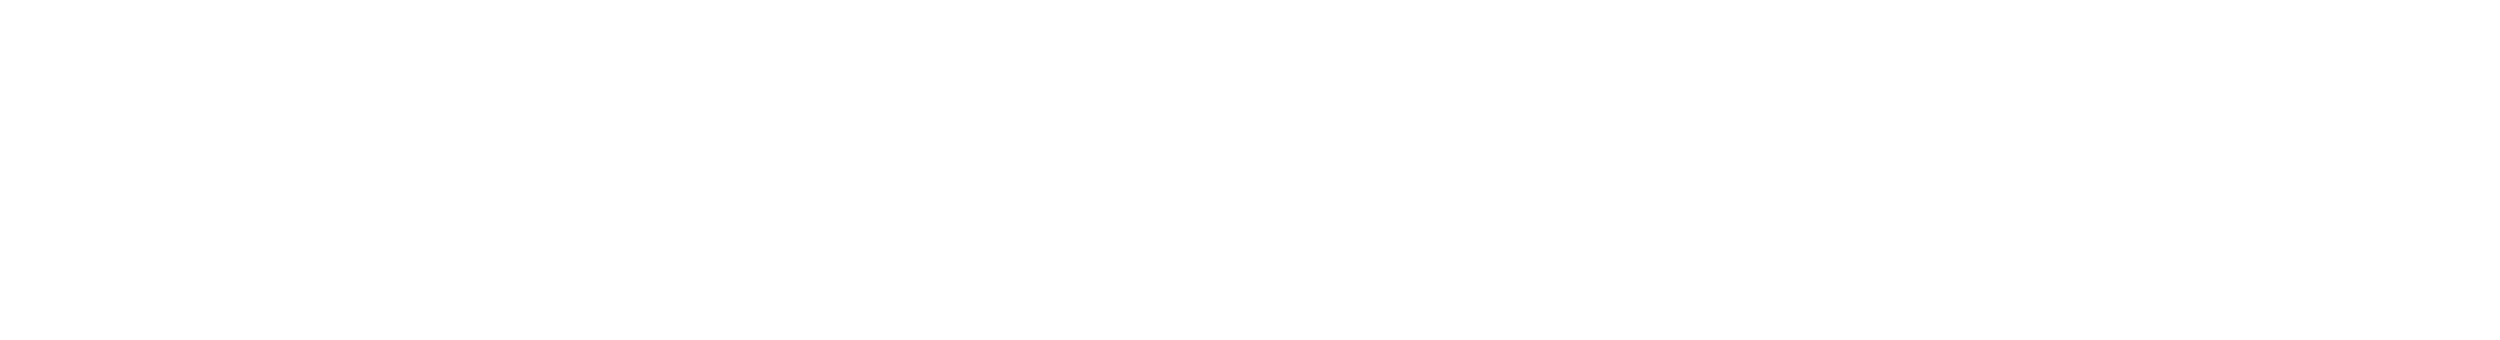 Bombardier_transp.png